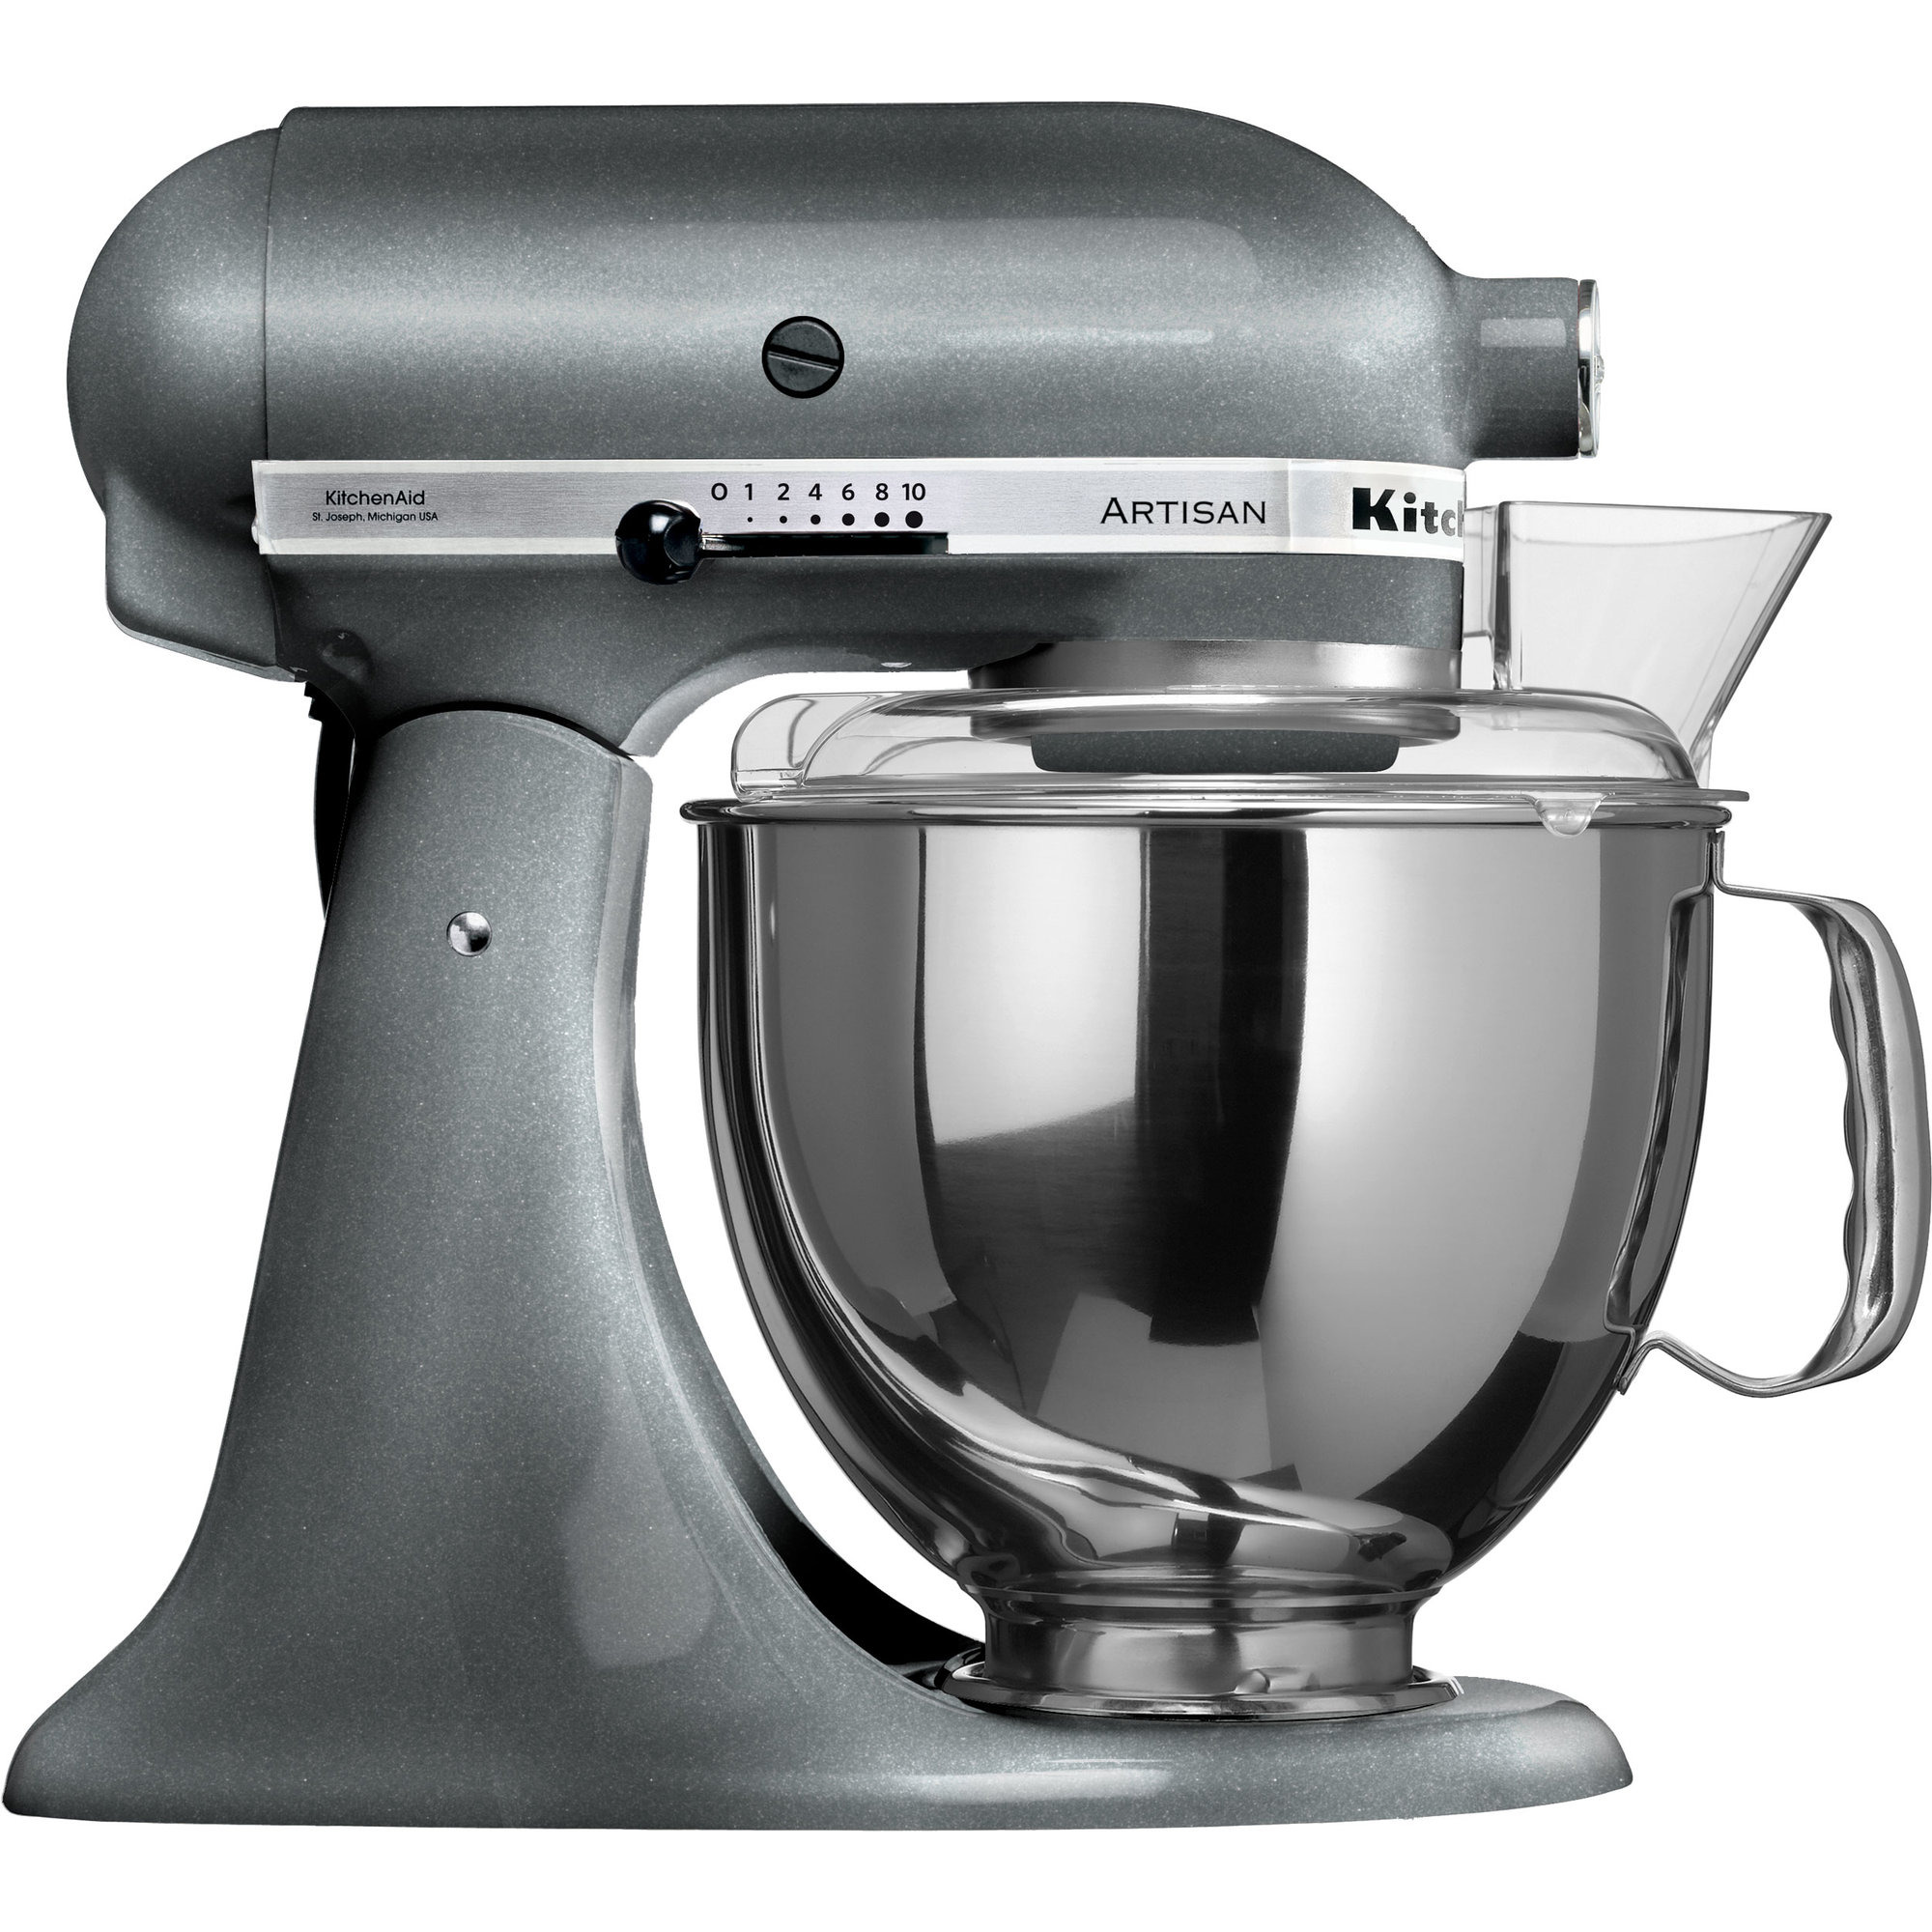 KitchenAid Artisan KSM150PSEPM Pearl metallic